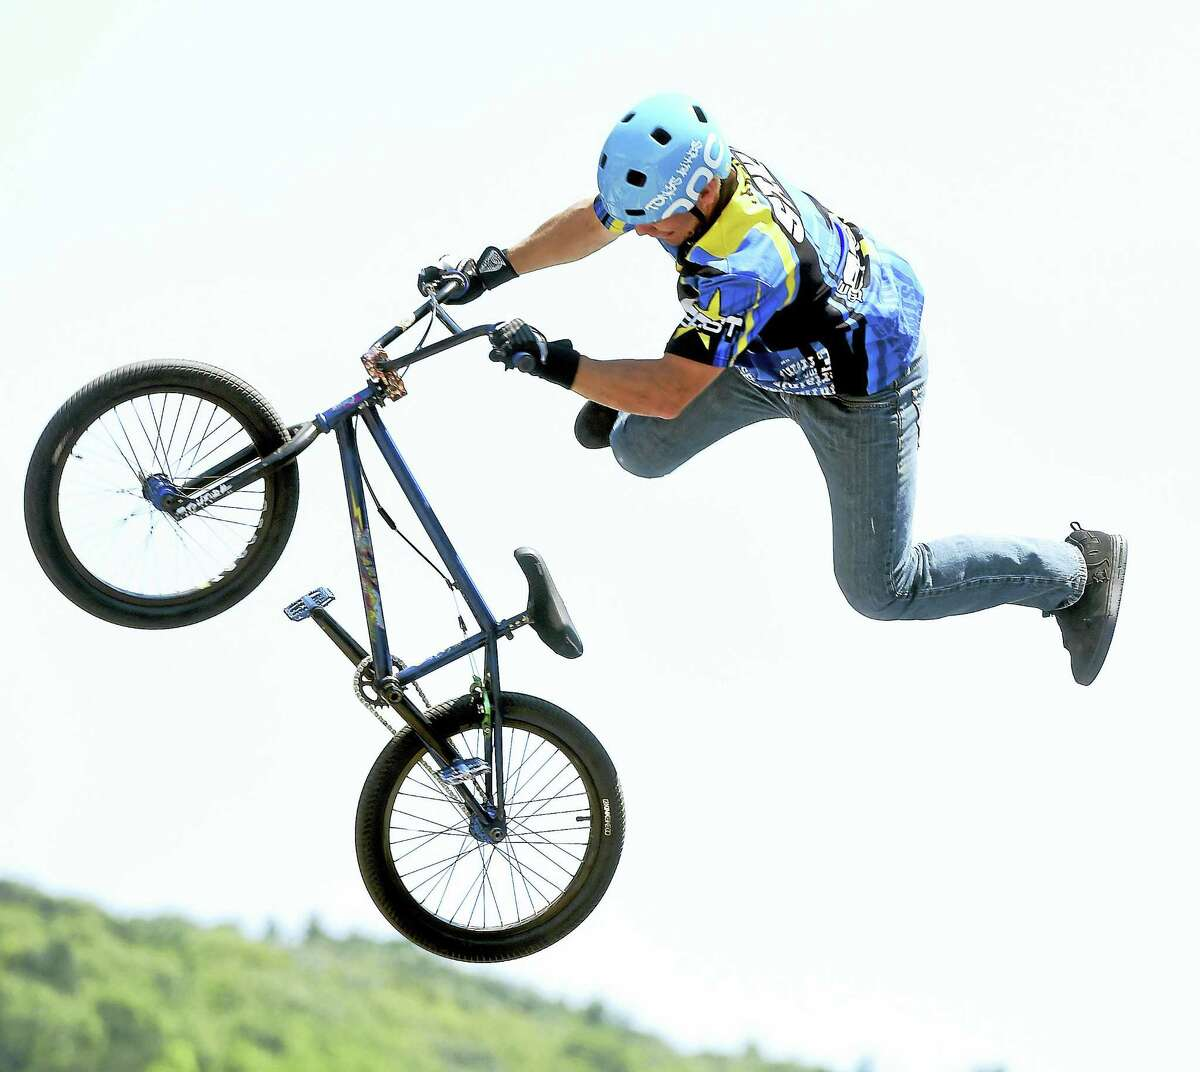 Colton Civitello of Team East performs stunts on a BMX bicycle during the Pierre Lallement Bicycle Festival in Ansonia on Saturday.